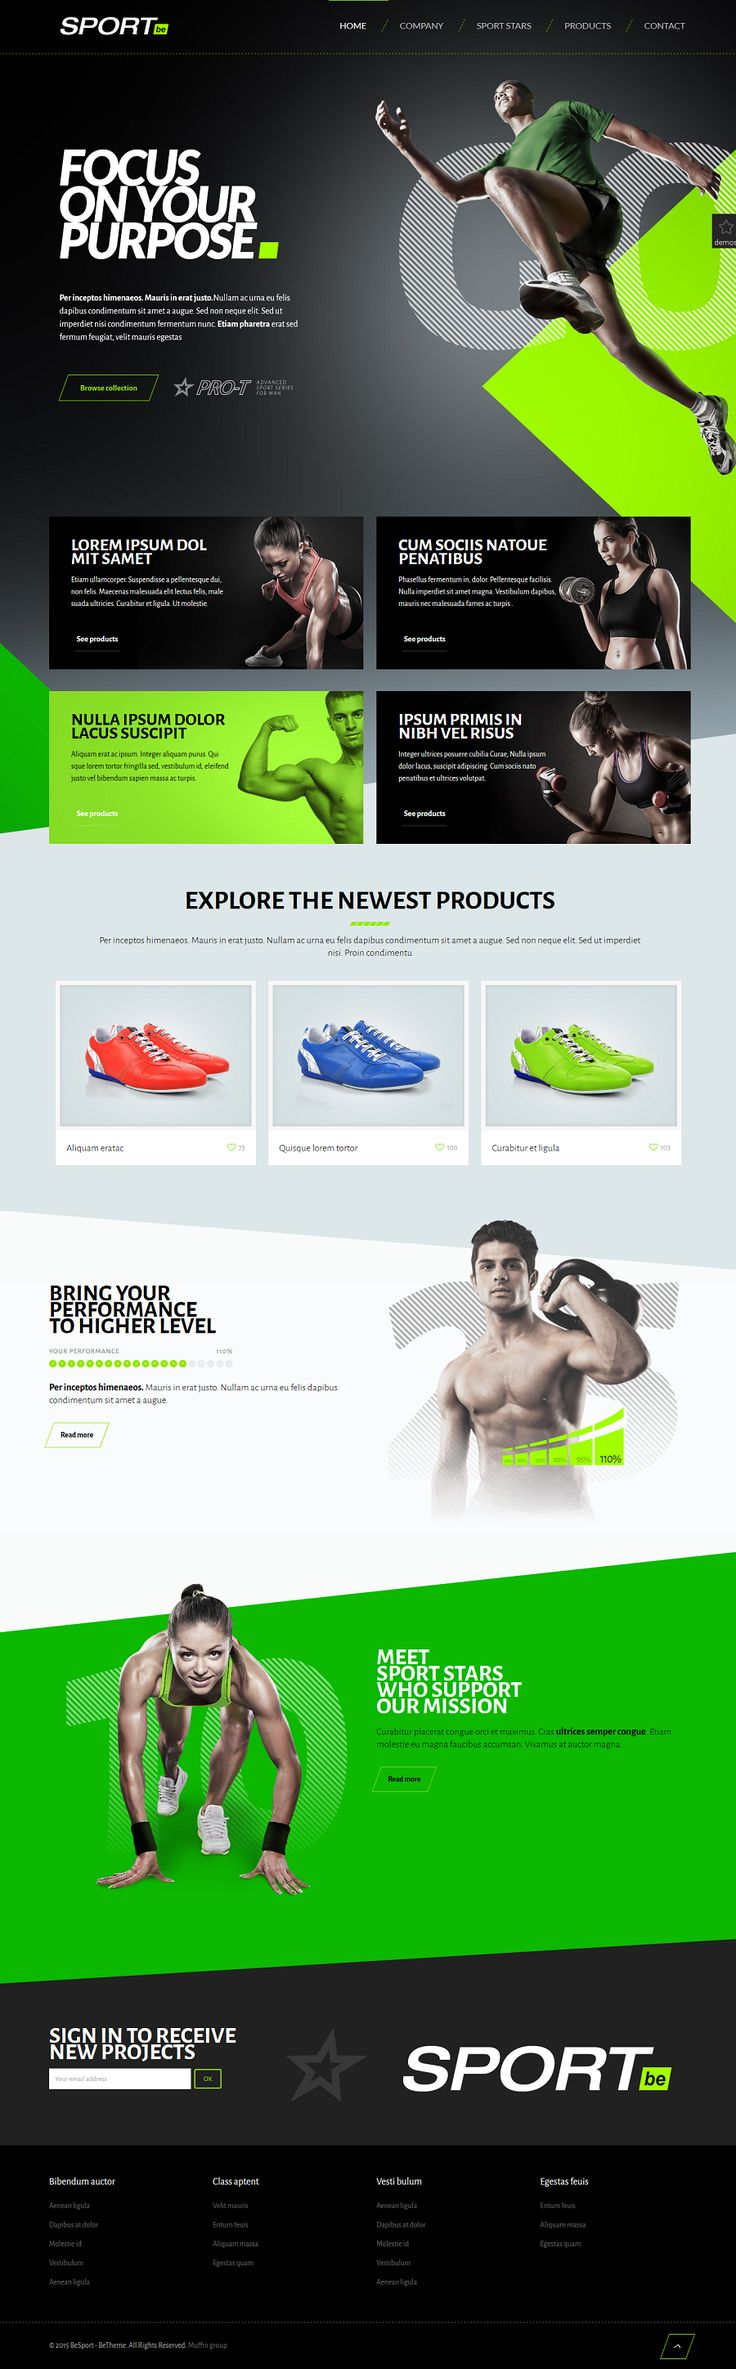 This green website design makes this athletic brand look energizing. Discover more website design examples at www.dotcomglobalmedia.com